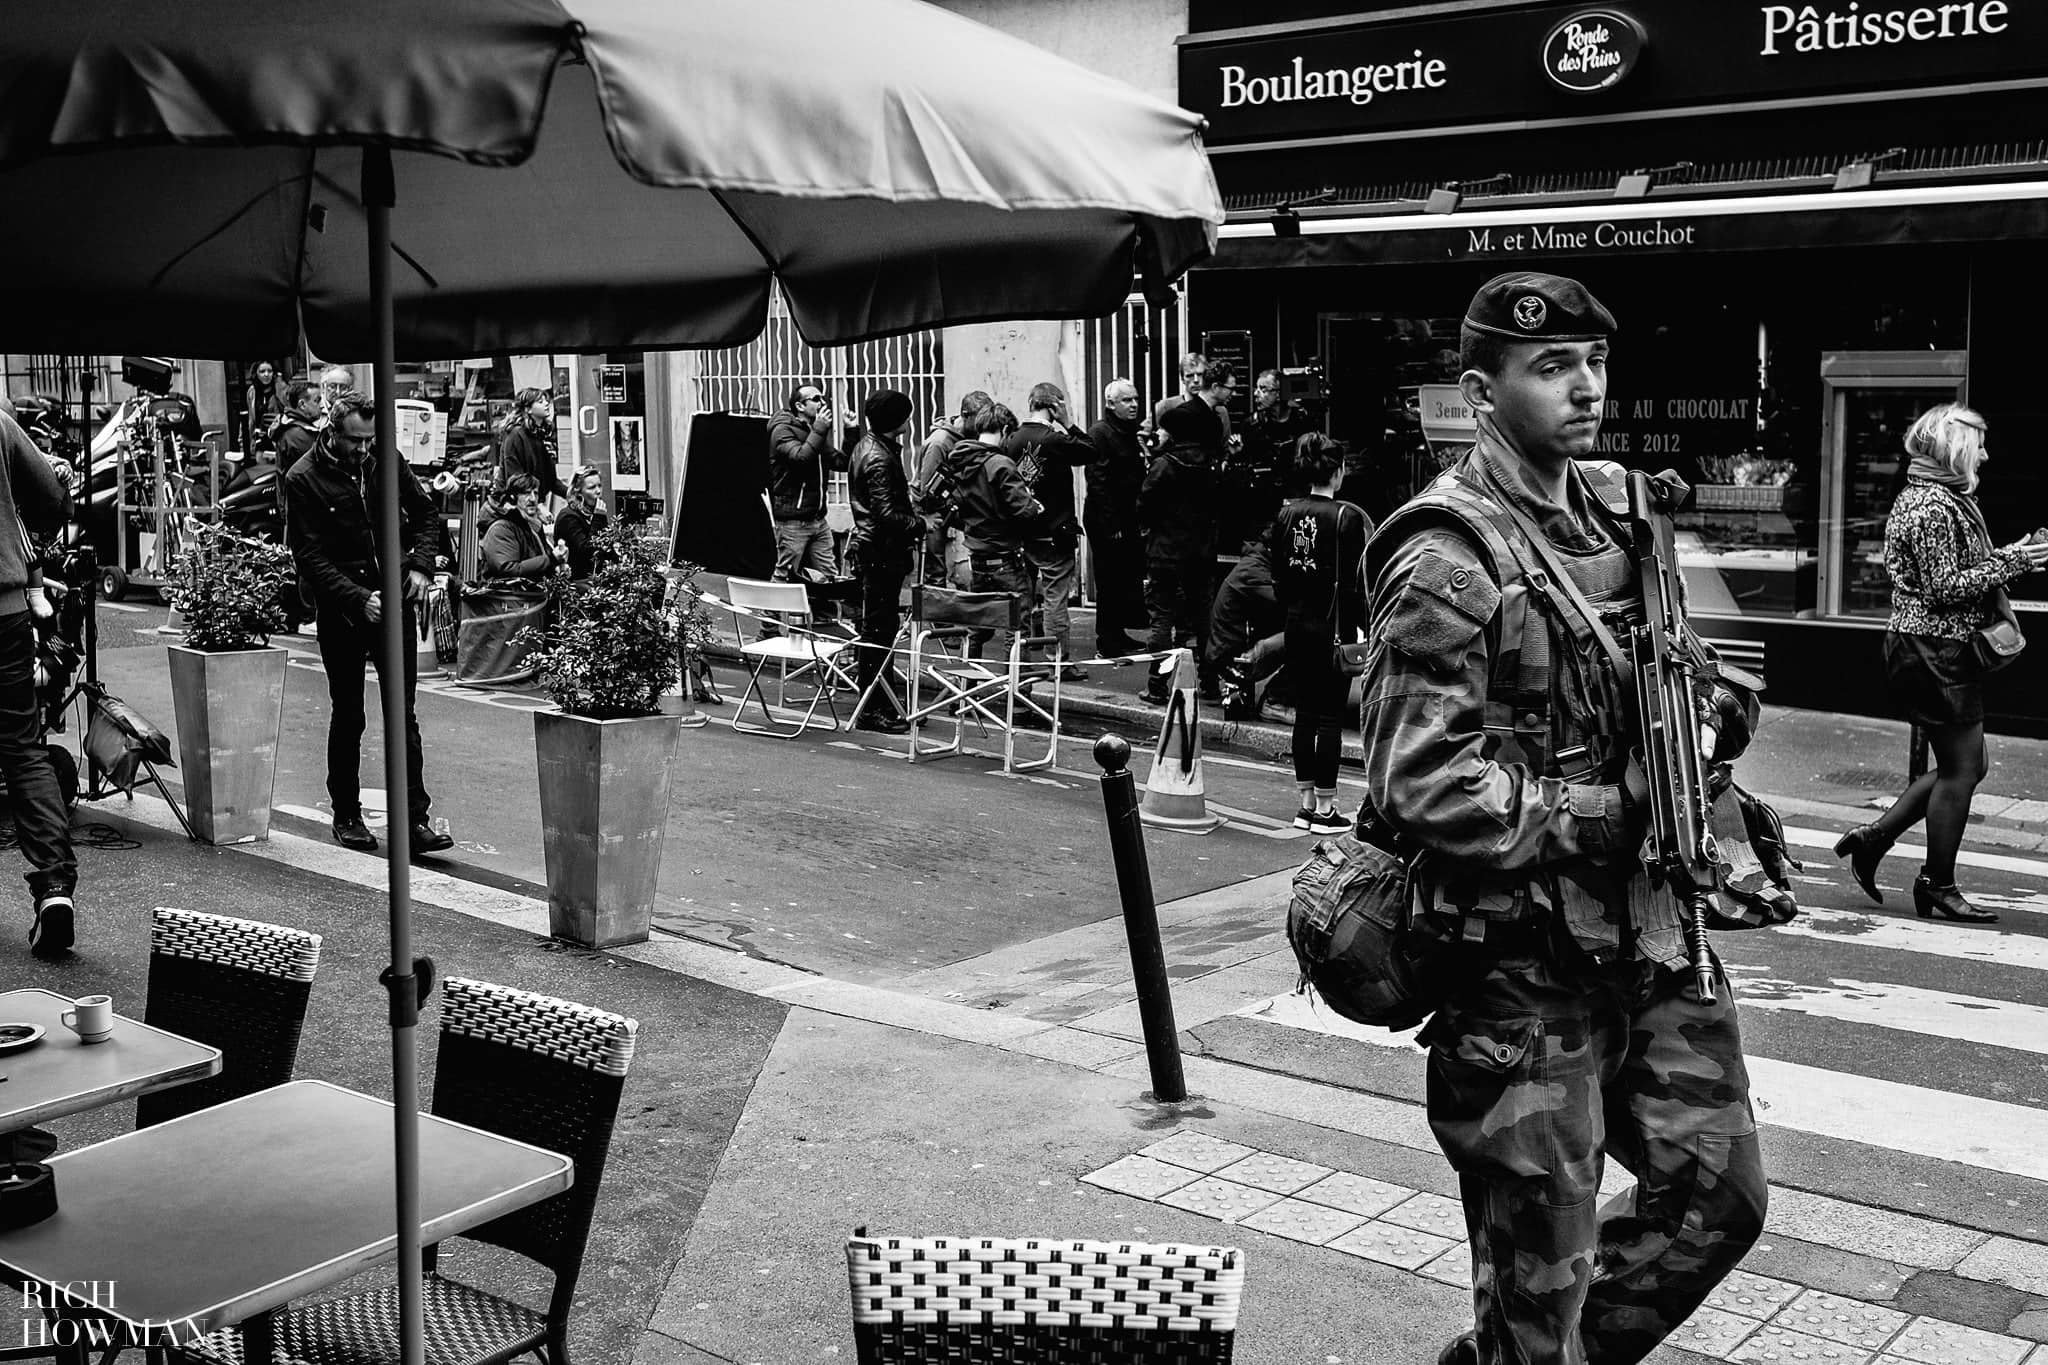 French Soldiers in Monmartre